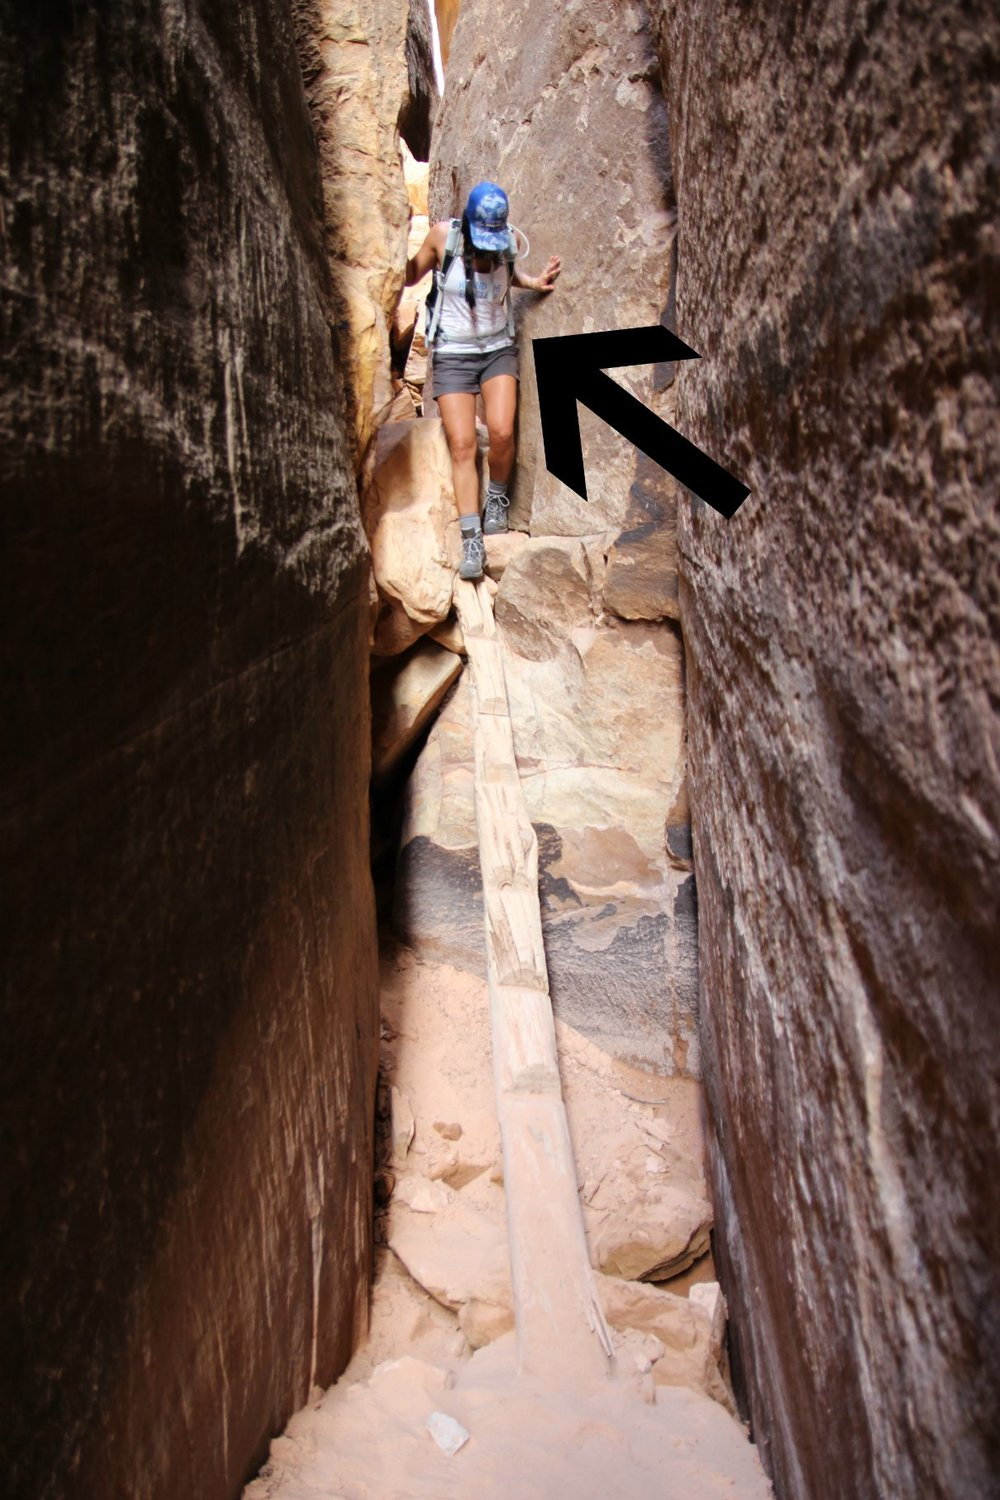 body-image-he-and-she-eat-clean-pictures-i-hated-because-i-was-fat-canyonlands-national-park.jpg